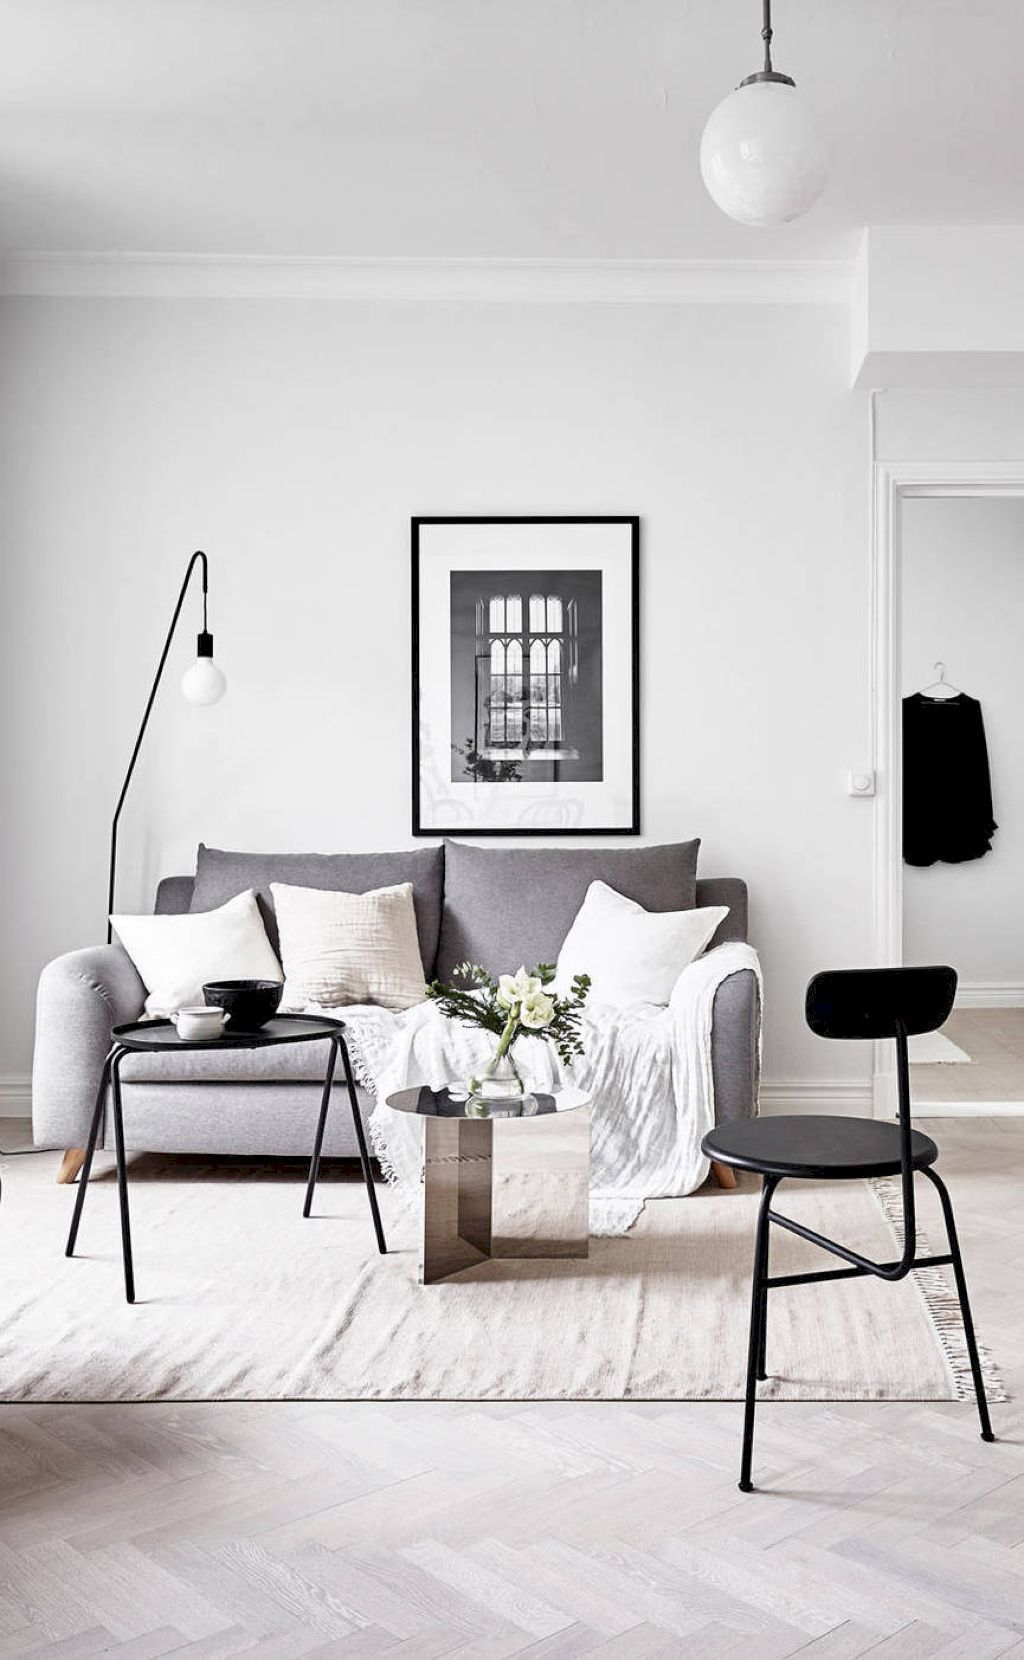 25 Smart And Practical Simple Living Room Ideas Minimalism Small To Add Vi In 2020 Modern Minimalist Living Room Minimalist Living Room Decor Living Room Scandinavian